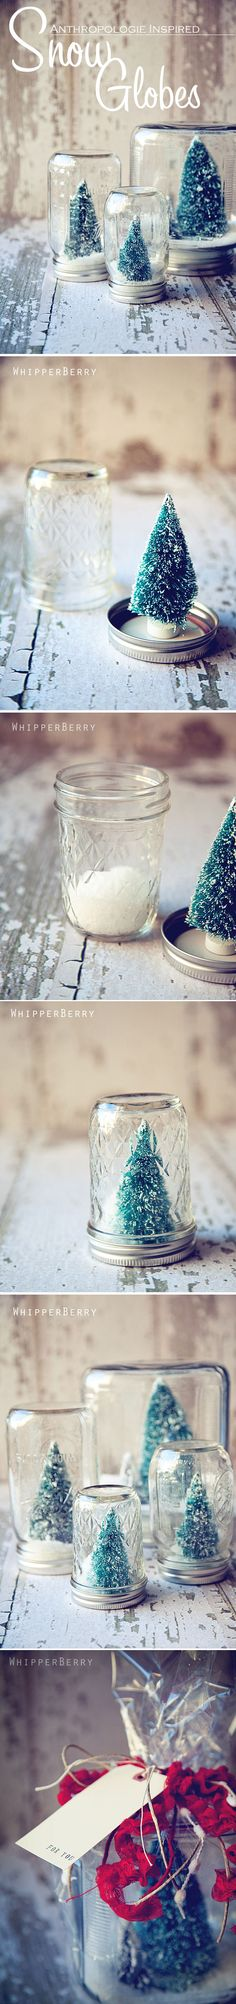 Mini DIY snow globes